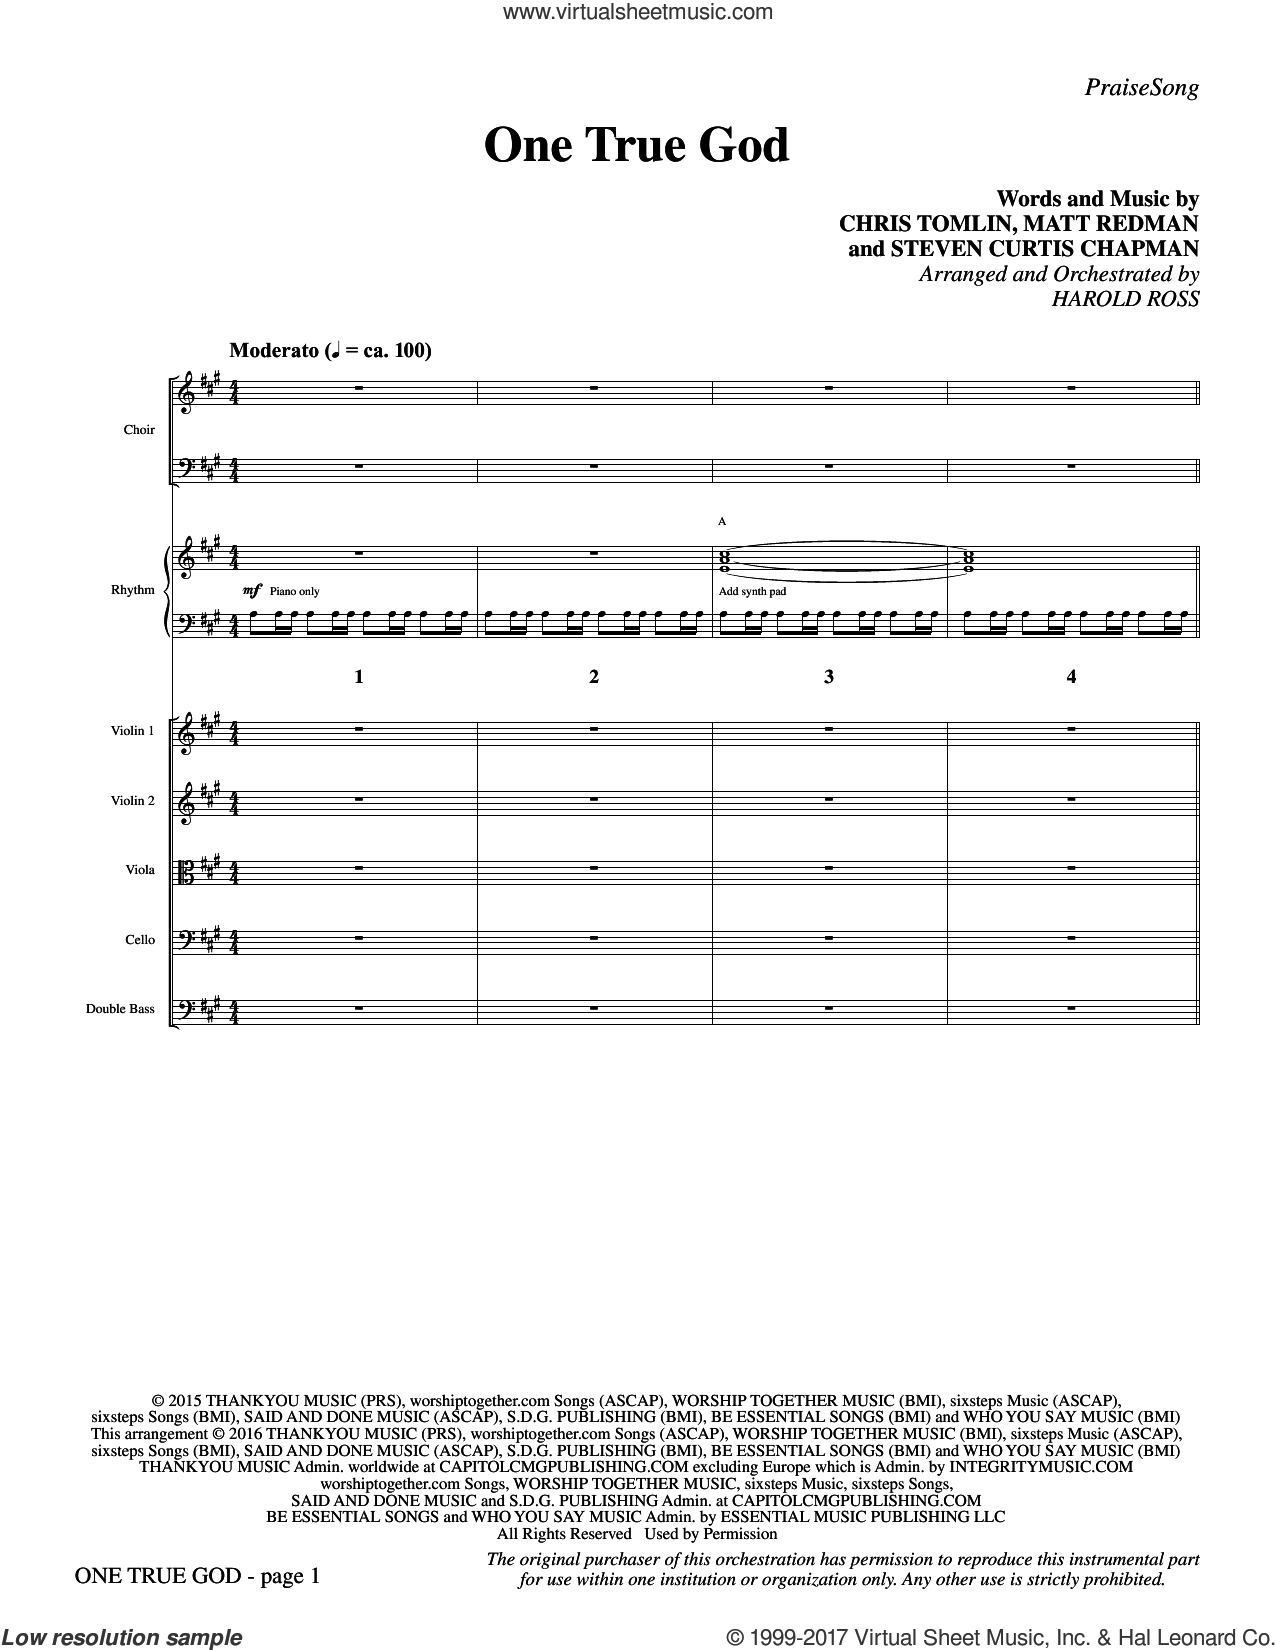 One True God (COMPLETE) sheet music for orchestra/band by Chris Tomlin, Harold Ross, Matt Redman and Steven Curtis Chapman, intermediate skill level